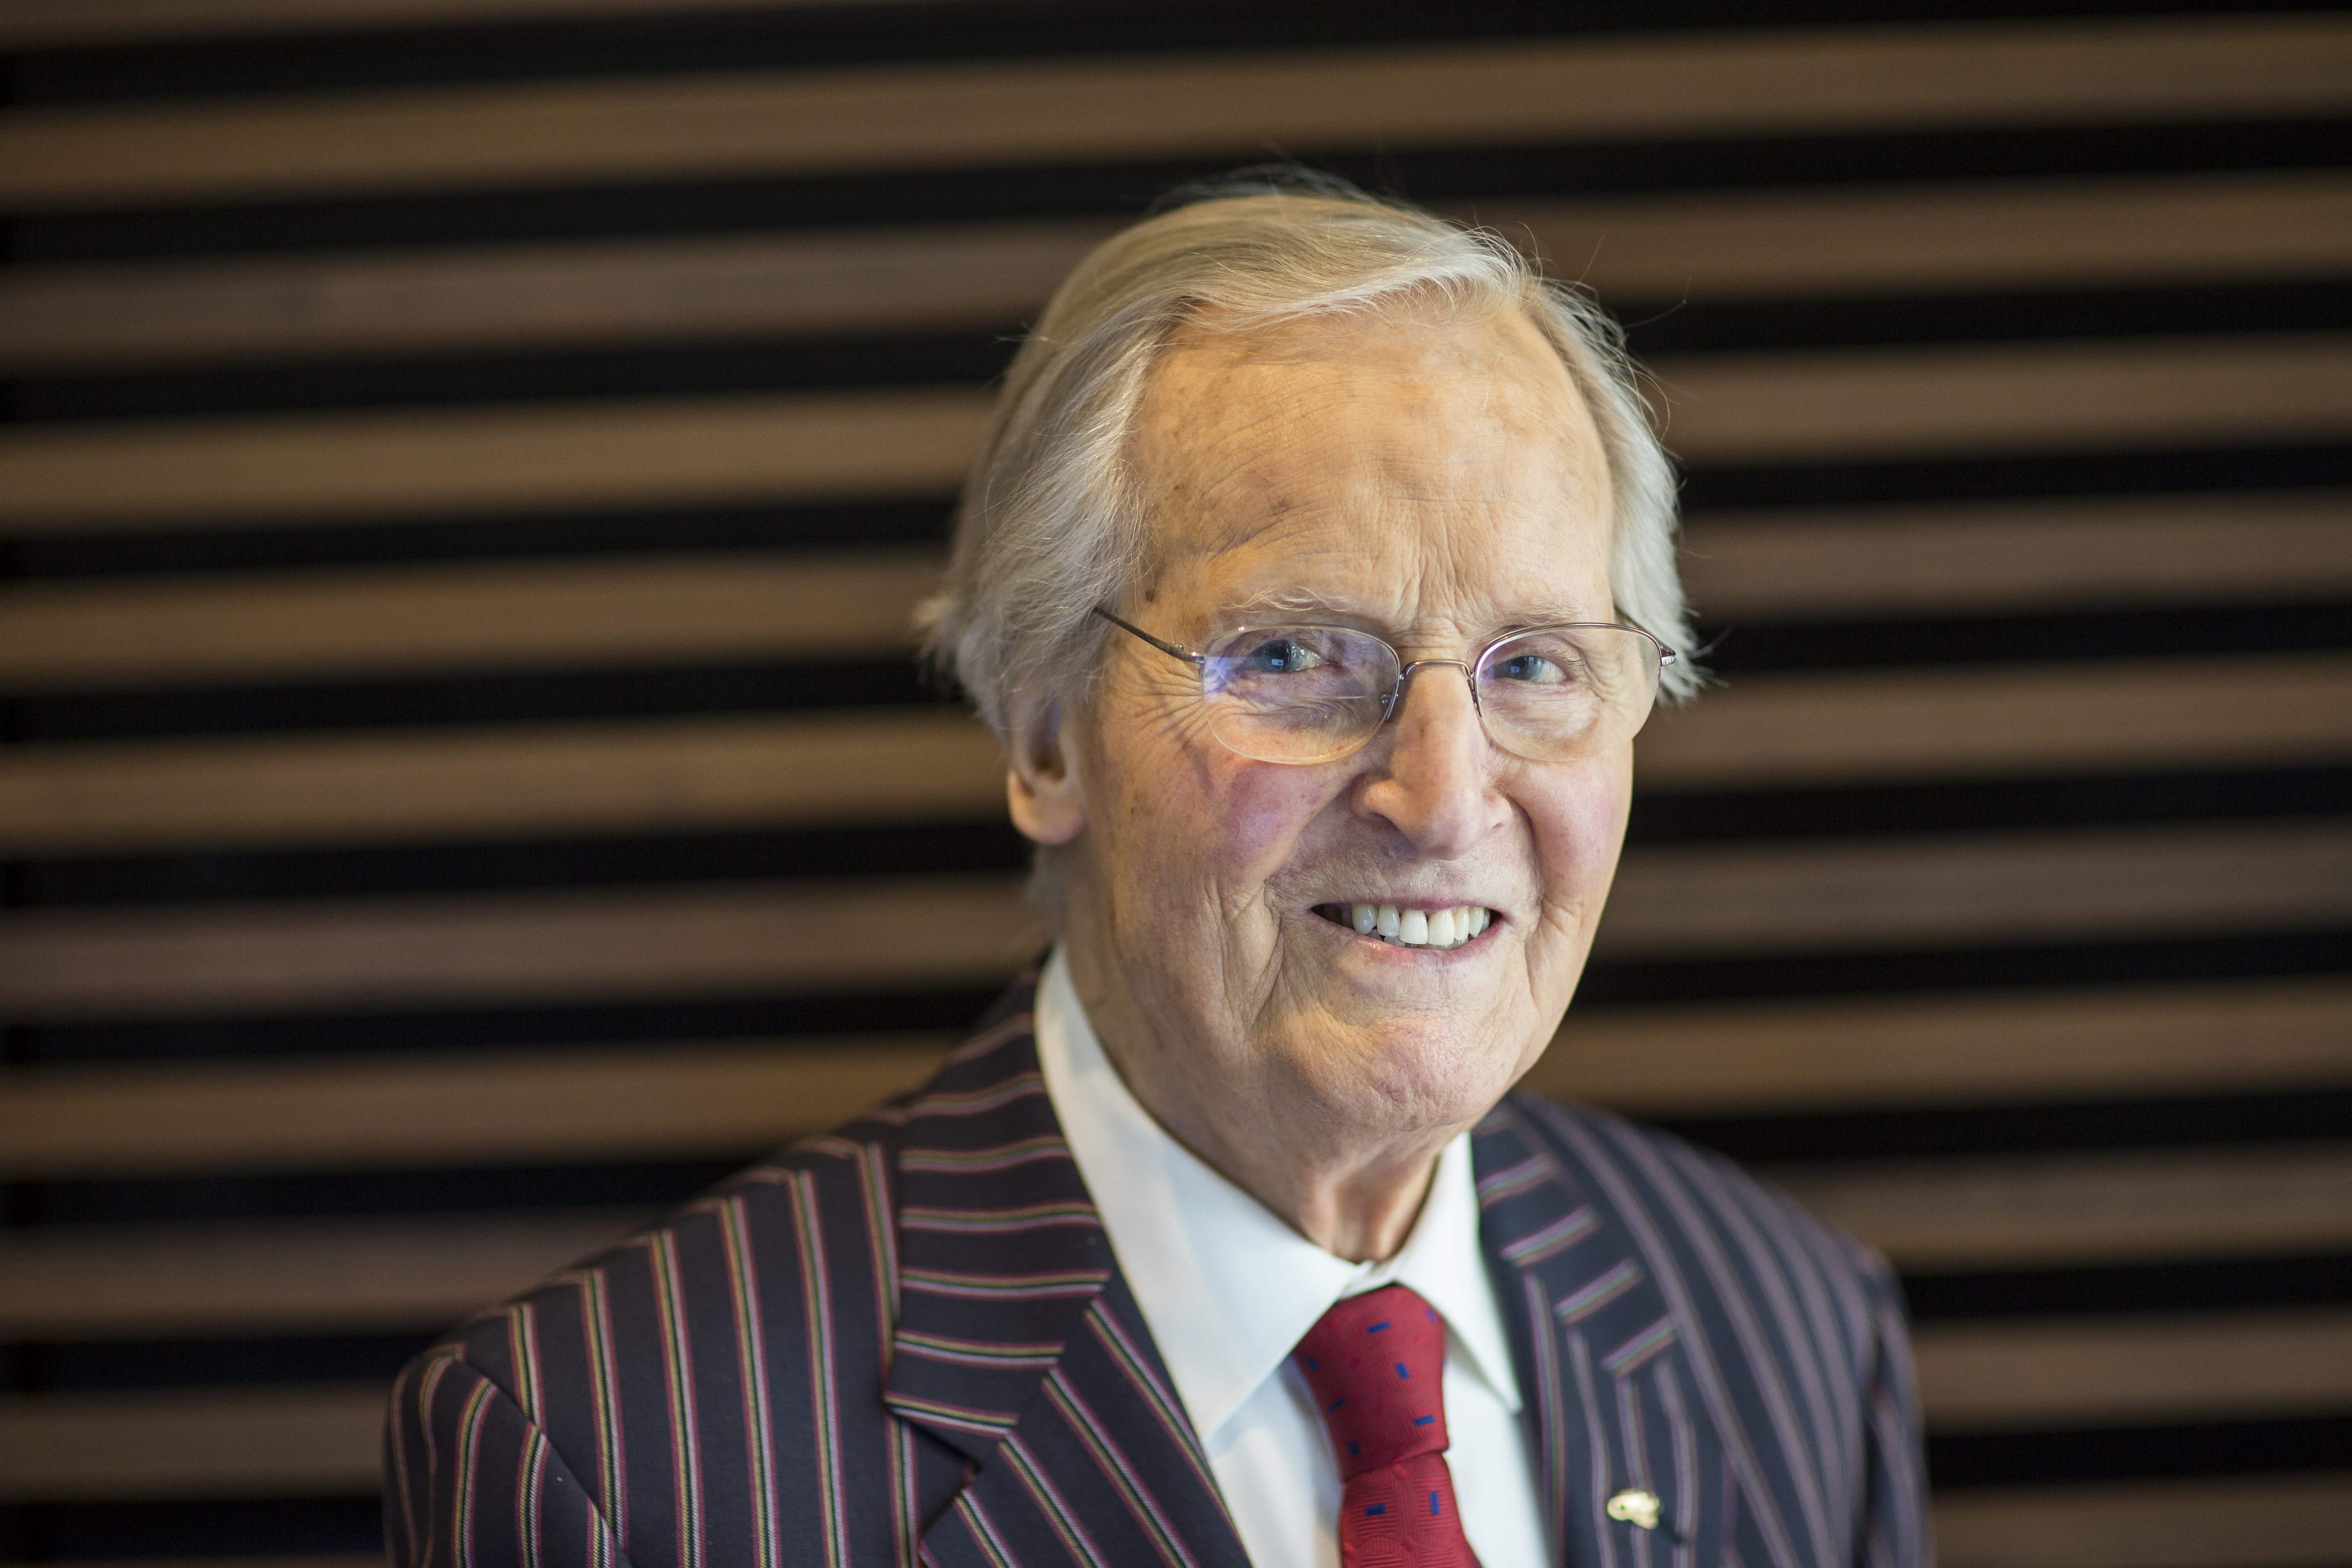 Nicholas Parsons, radio and television presenter, photographed at the FT Weekend Oxford Literary Festival on April 9, 2016 in Oxford, England. (Photo by David Levenson/Getty Images)